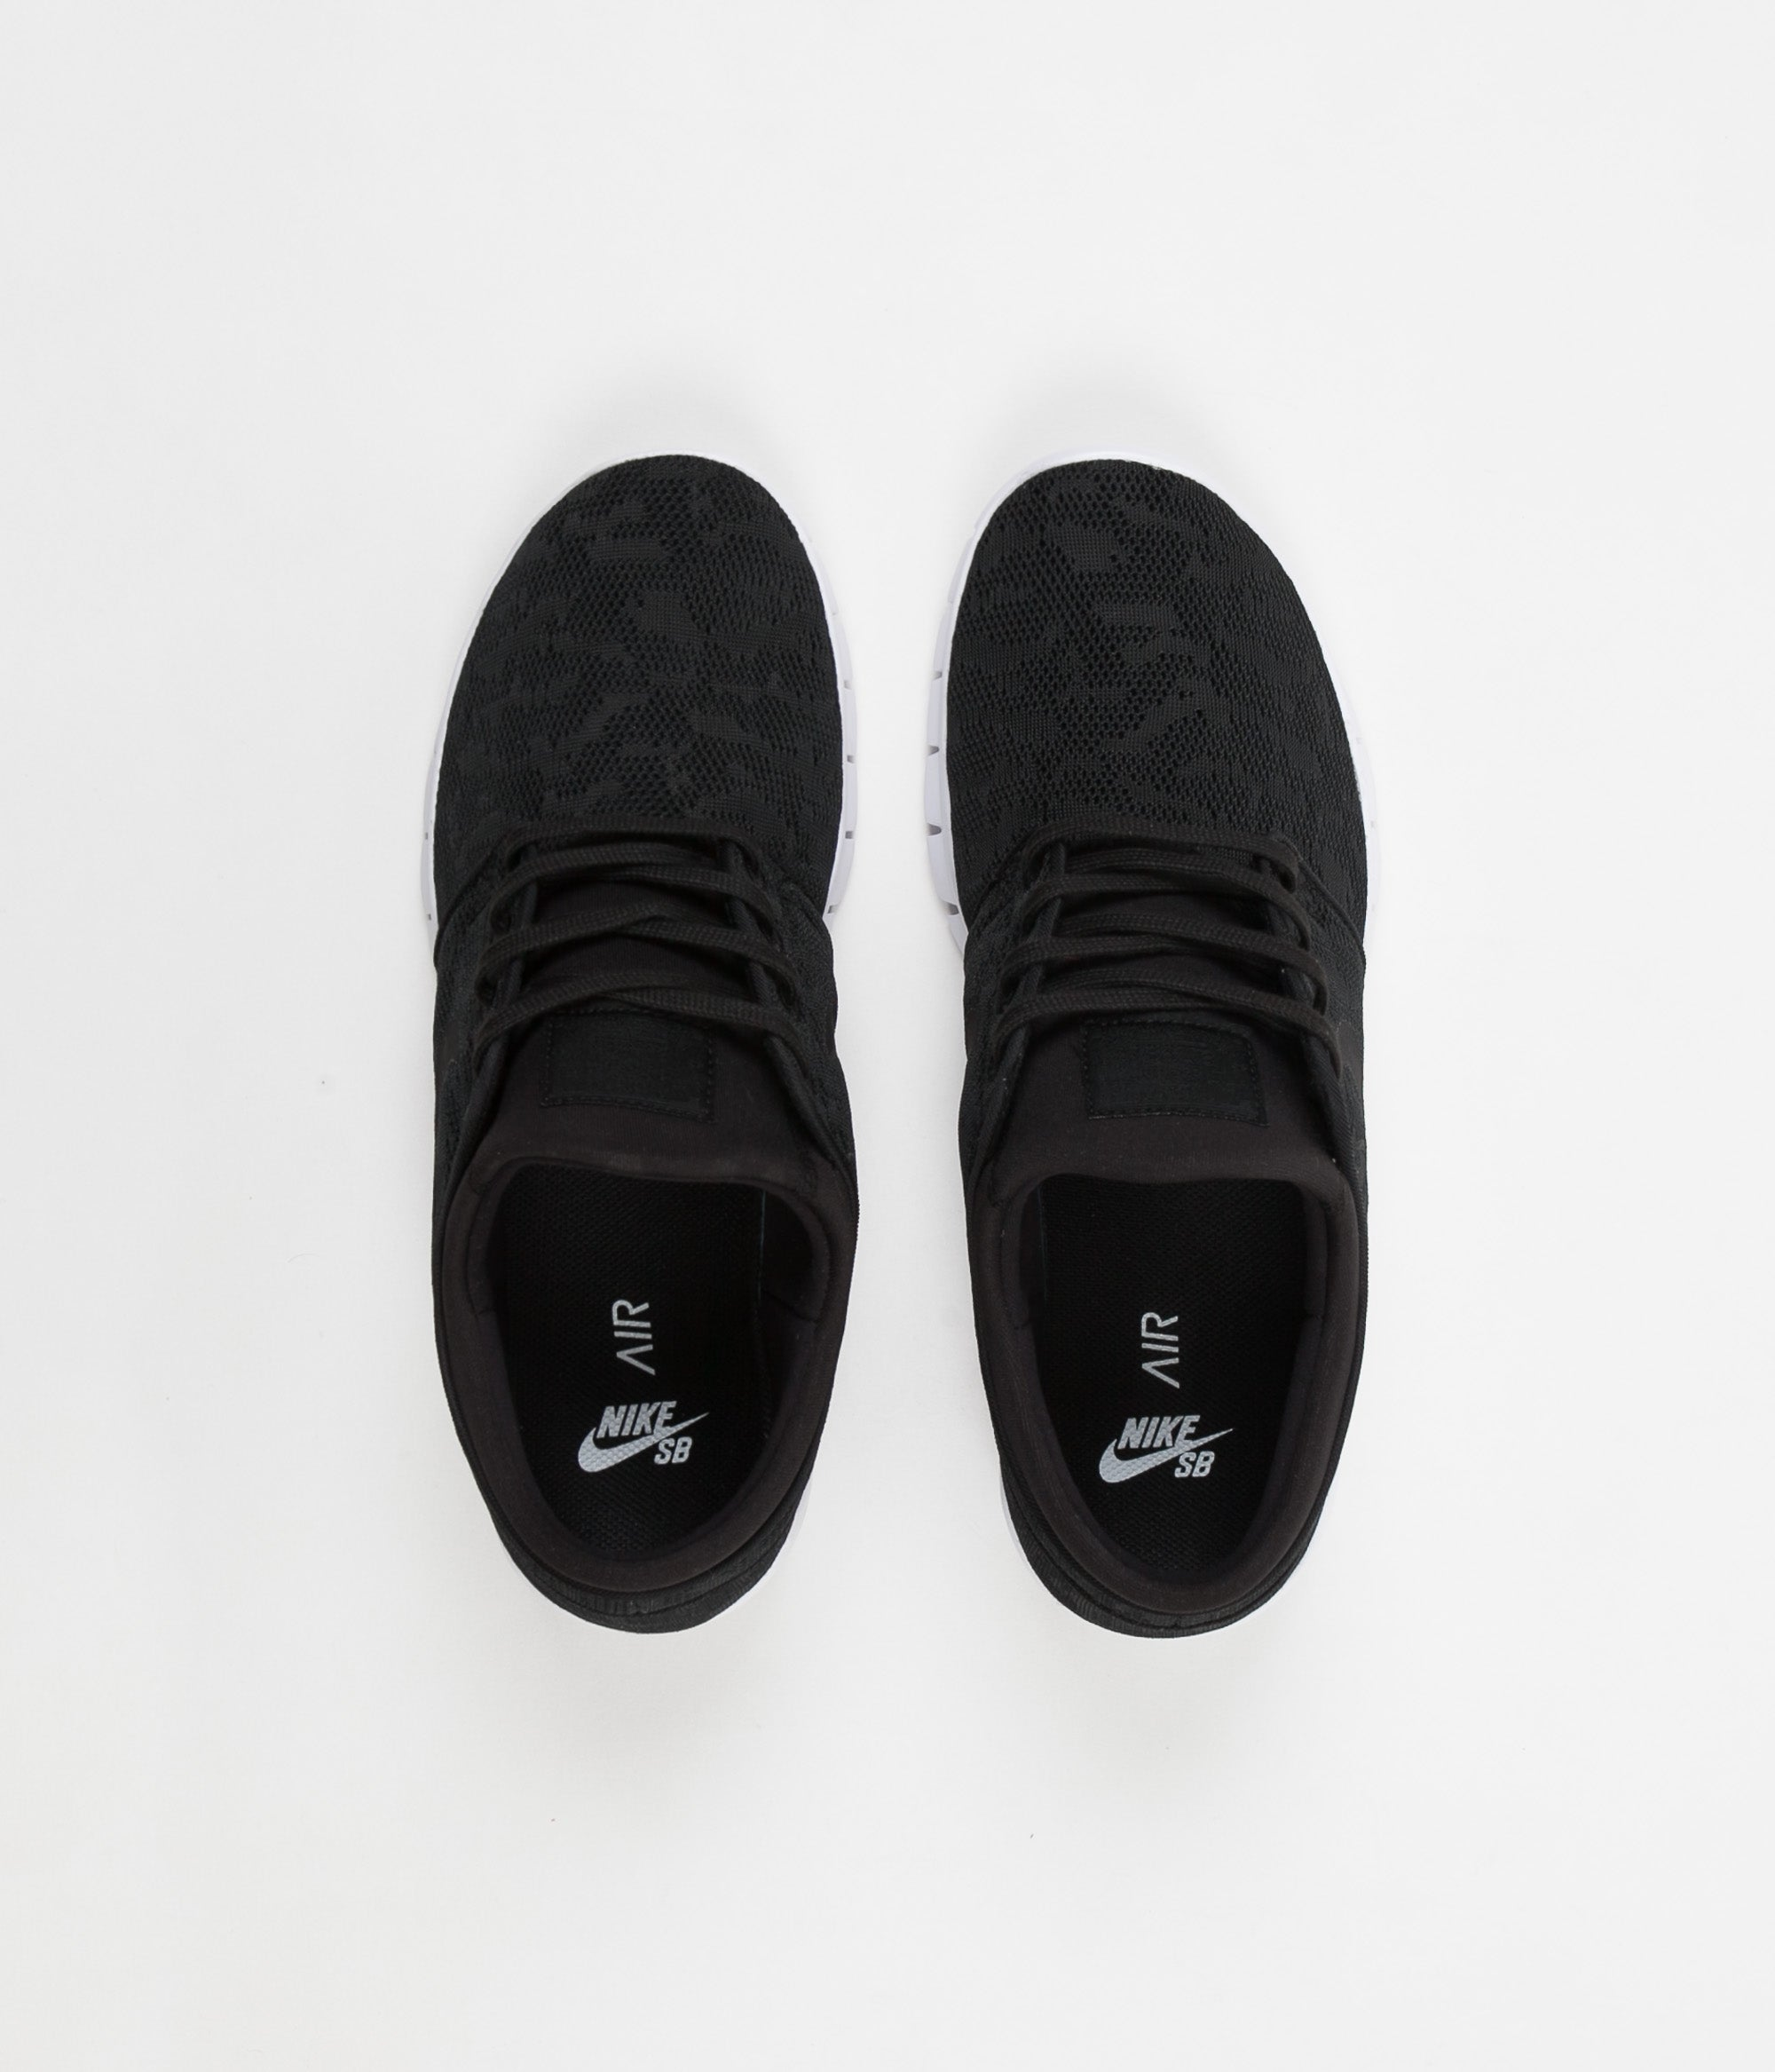 Nike SB Stefan Janoski Max Shoes - Black / Black - White